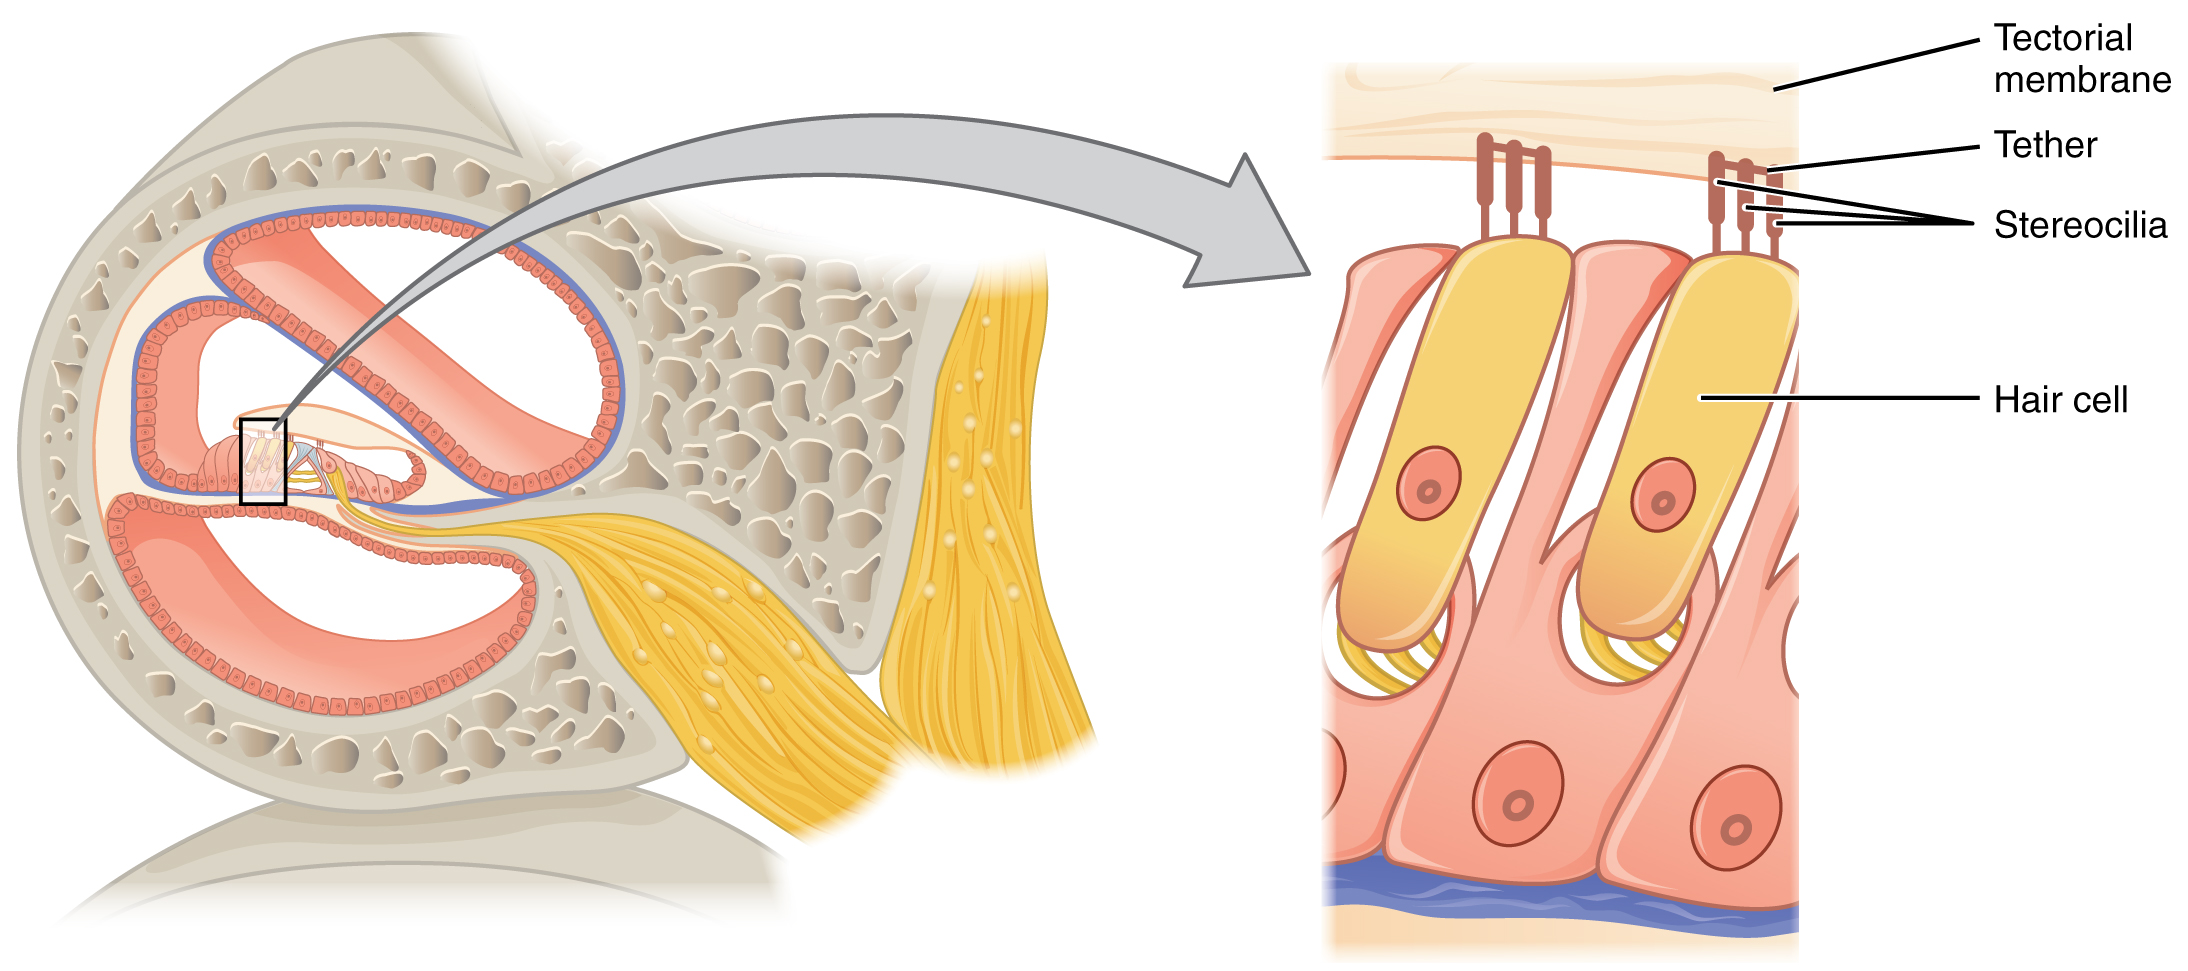 This Diagram Shows The Structure Of The Hair Cell  The